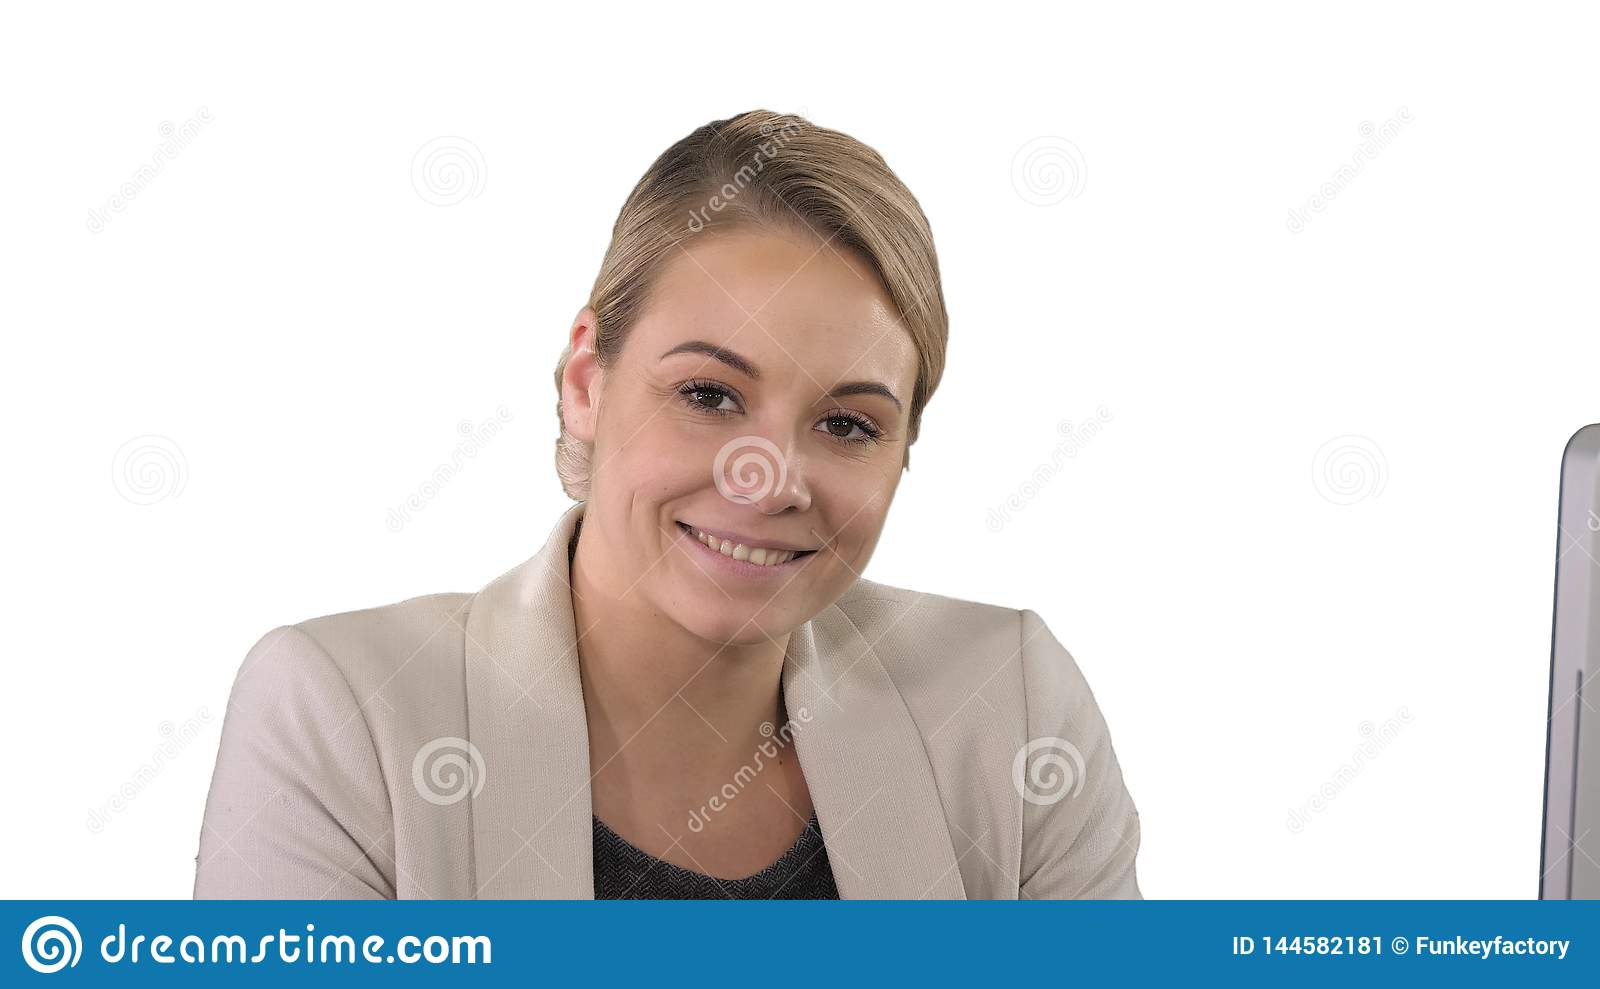 Smiling young woman looking at camera, white background